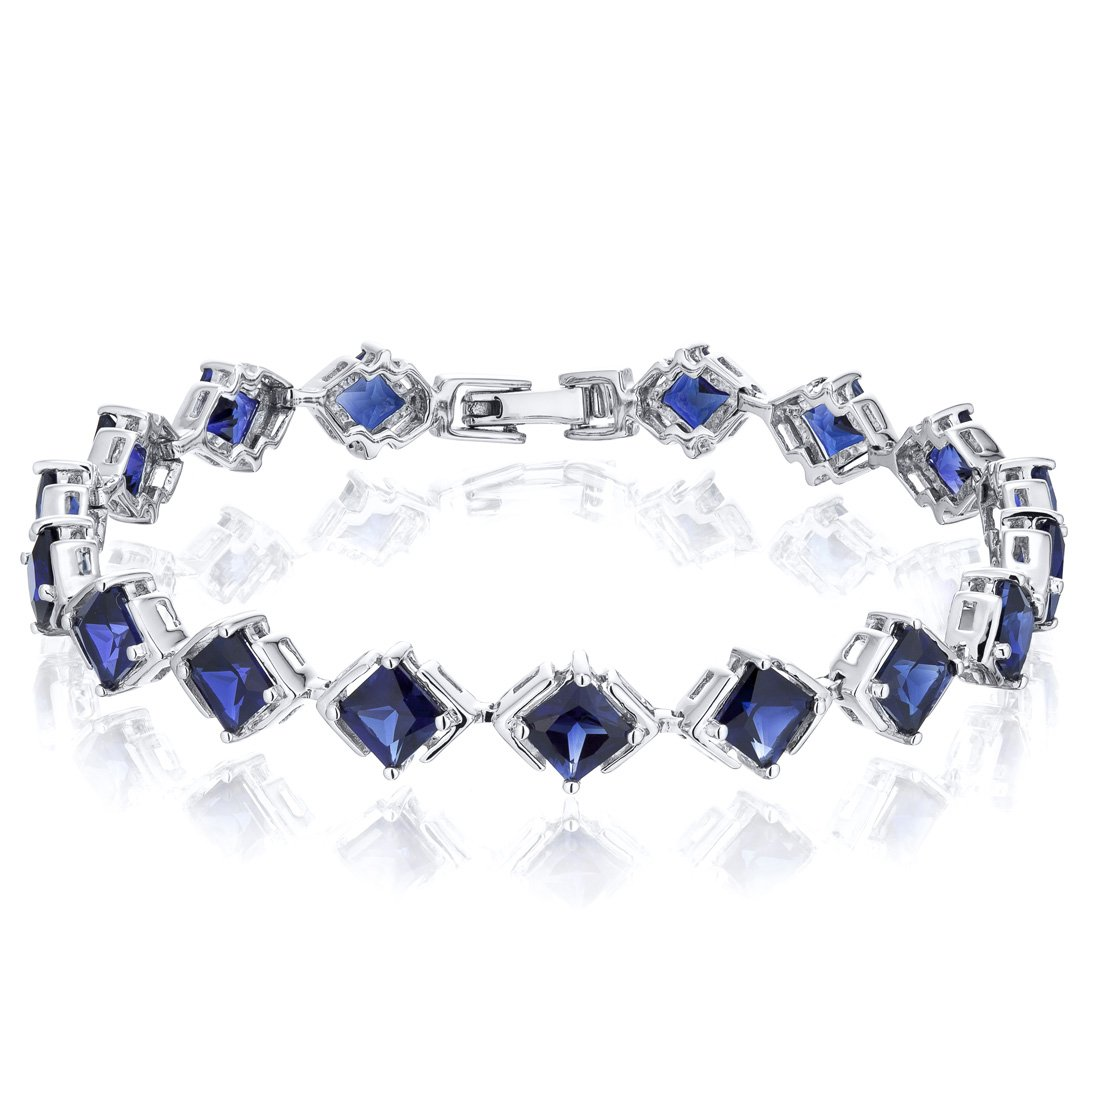 Princess Cut Created Sapphire Bracelet in Sterling Silver Rhodium Nickel Finish 12 Carats Total Weight by Peora